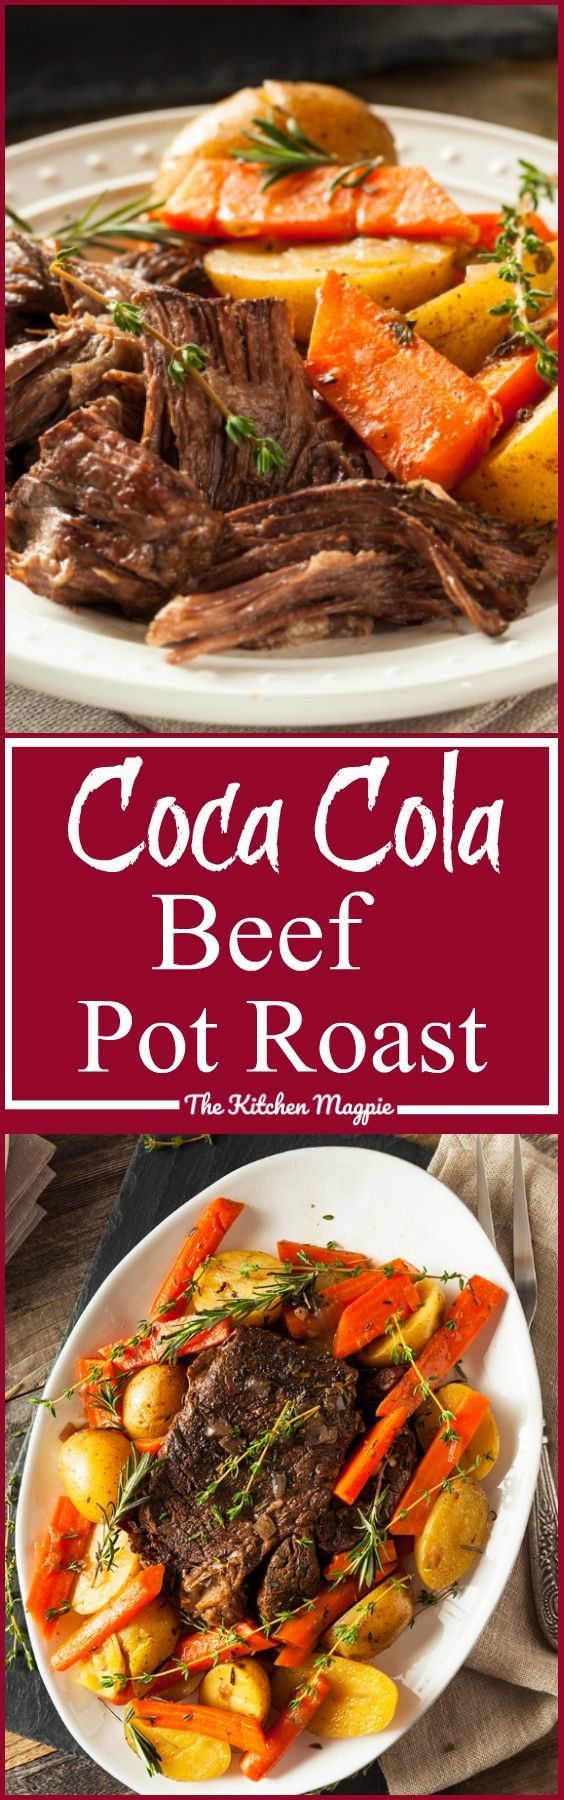 """Beef Coca Cola Pot Roast AKA """"Pop"""" Roast! This roast uses soda pop to make the gravy. I was so surprised at how delicious it was! A new fun favourite! from @kitchenmagpie"""